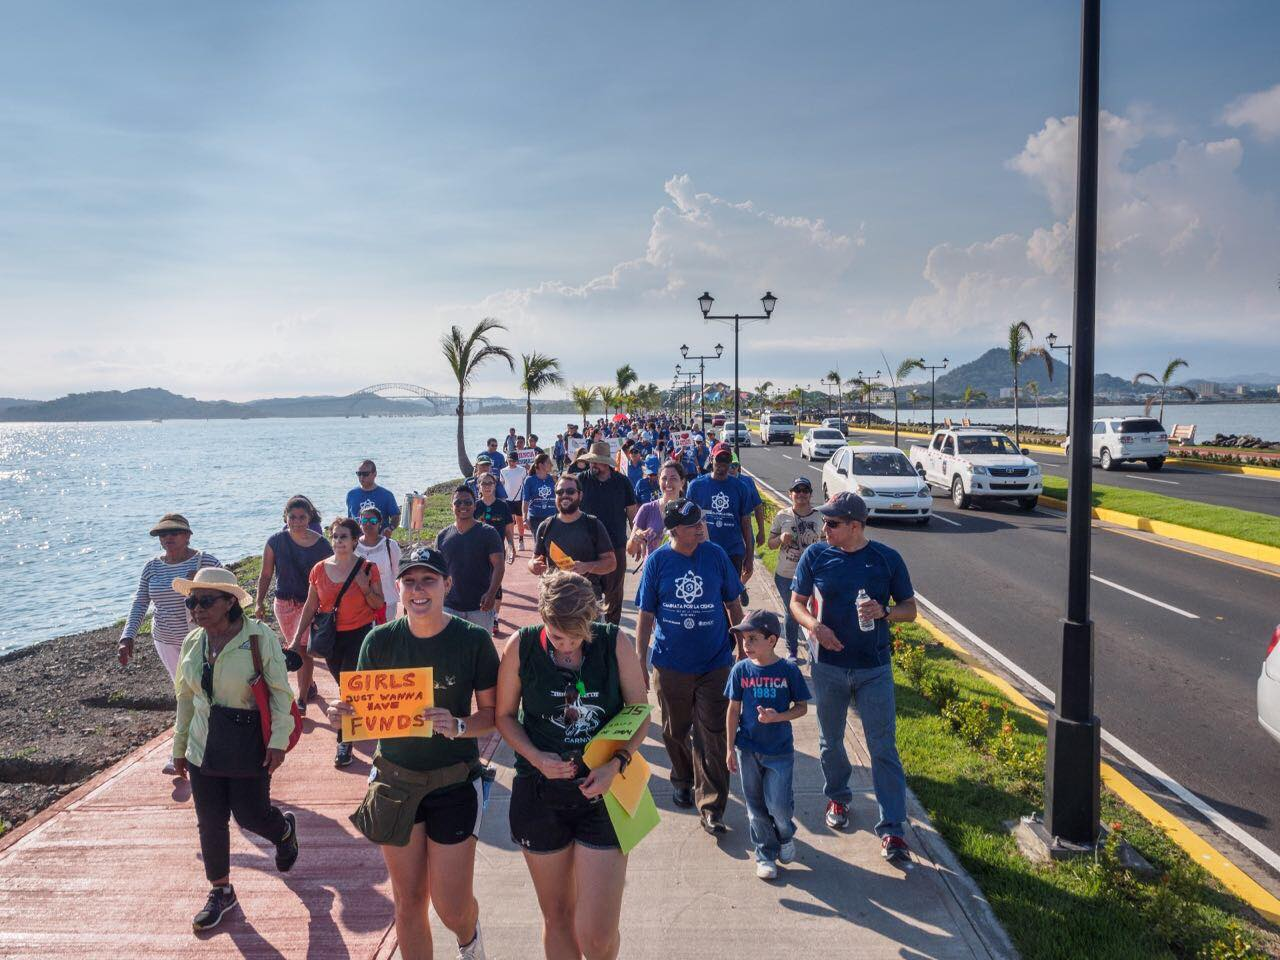 Supporters of science walking together during the Caminata por la Ciencia on Amador Causeway, Panama City, Panama.